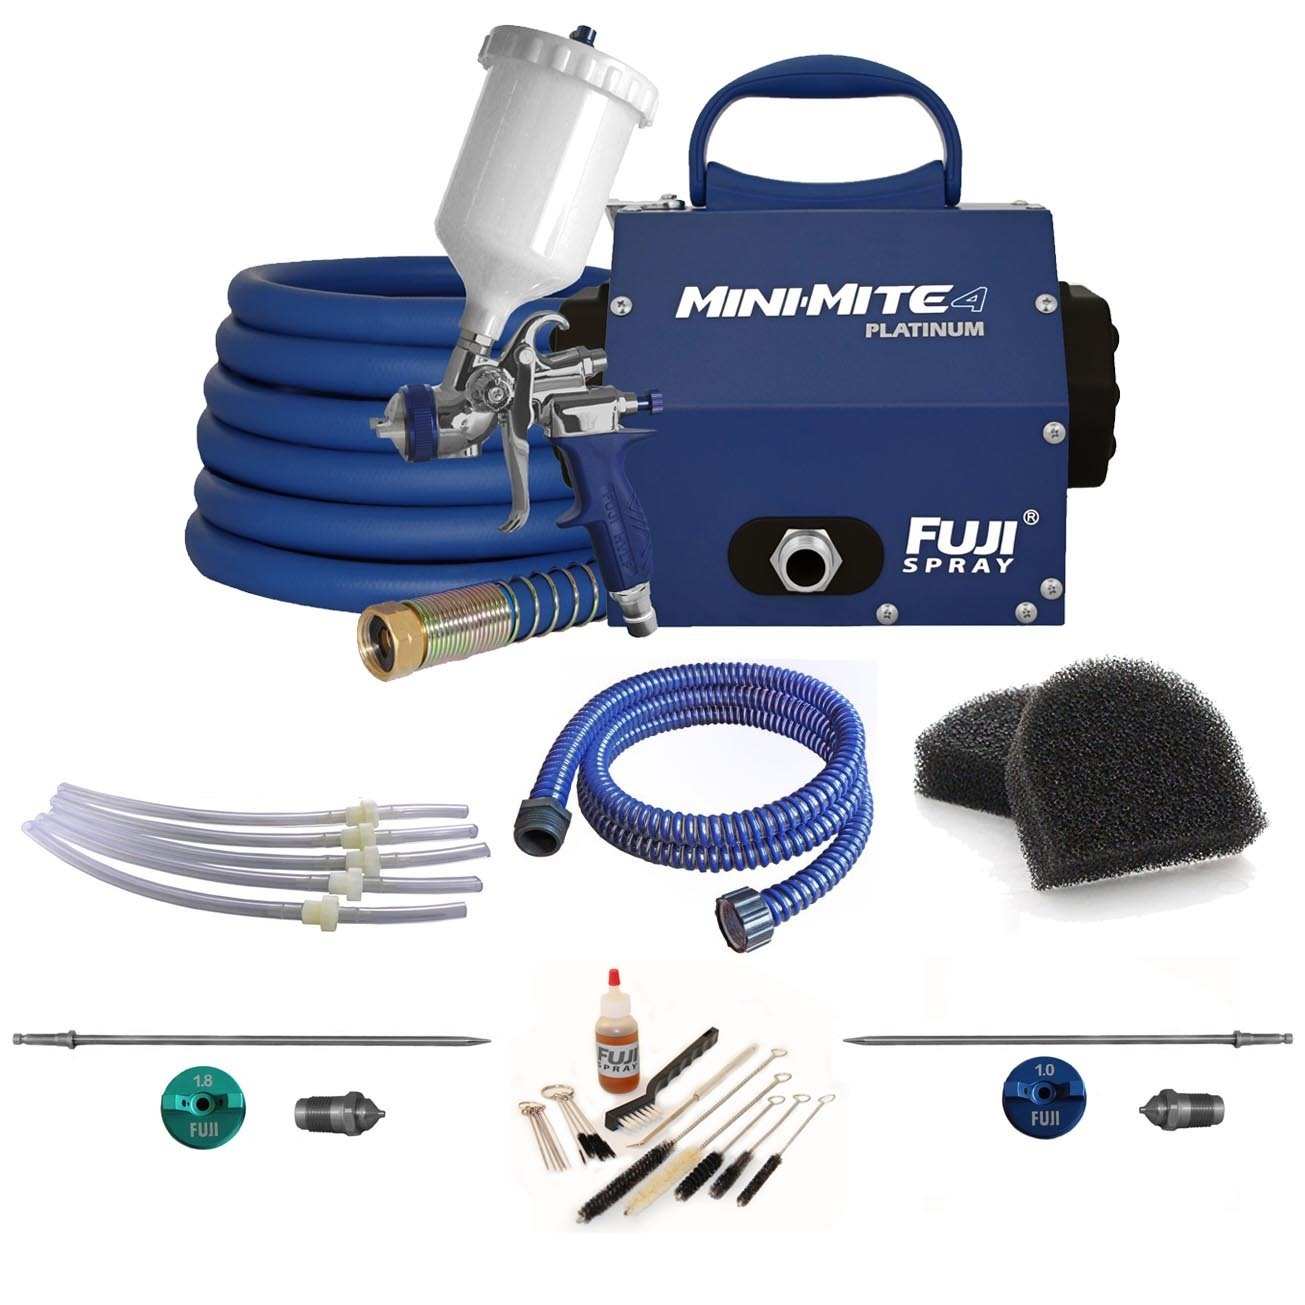 Fuji Mini-Mite 4 Platinum HVLP Spray System w/ Cup Parts Kit & Accessory Bundle